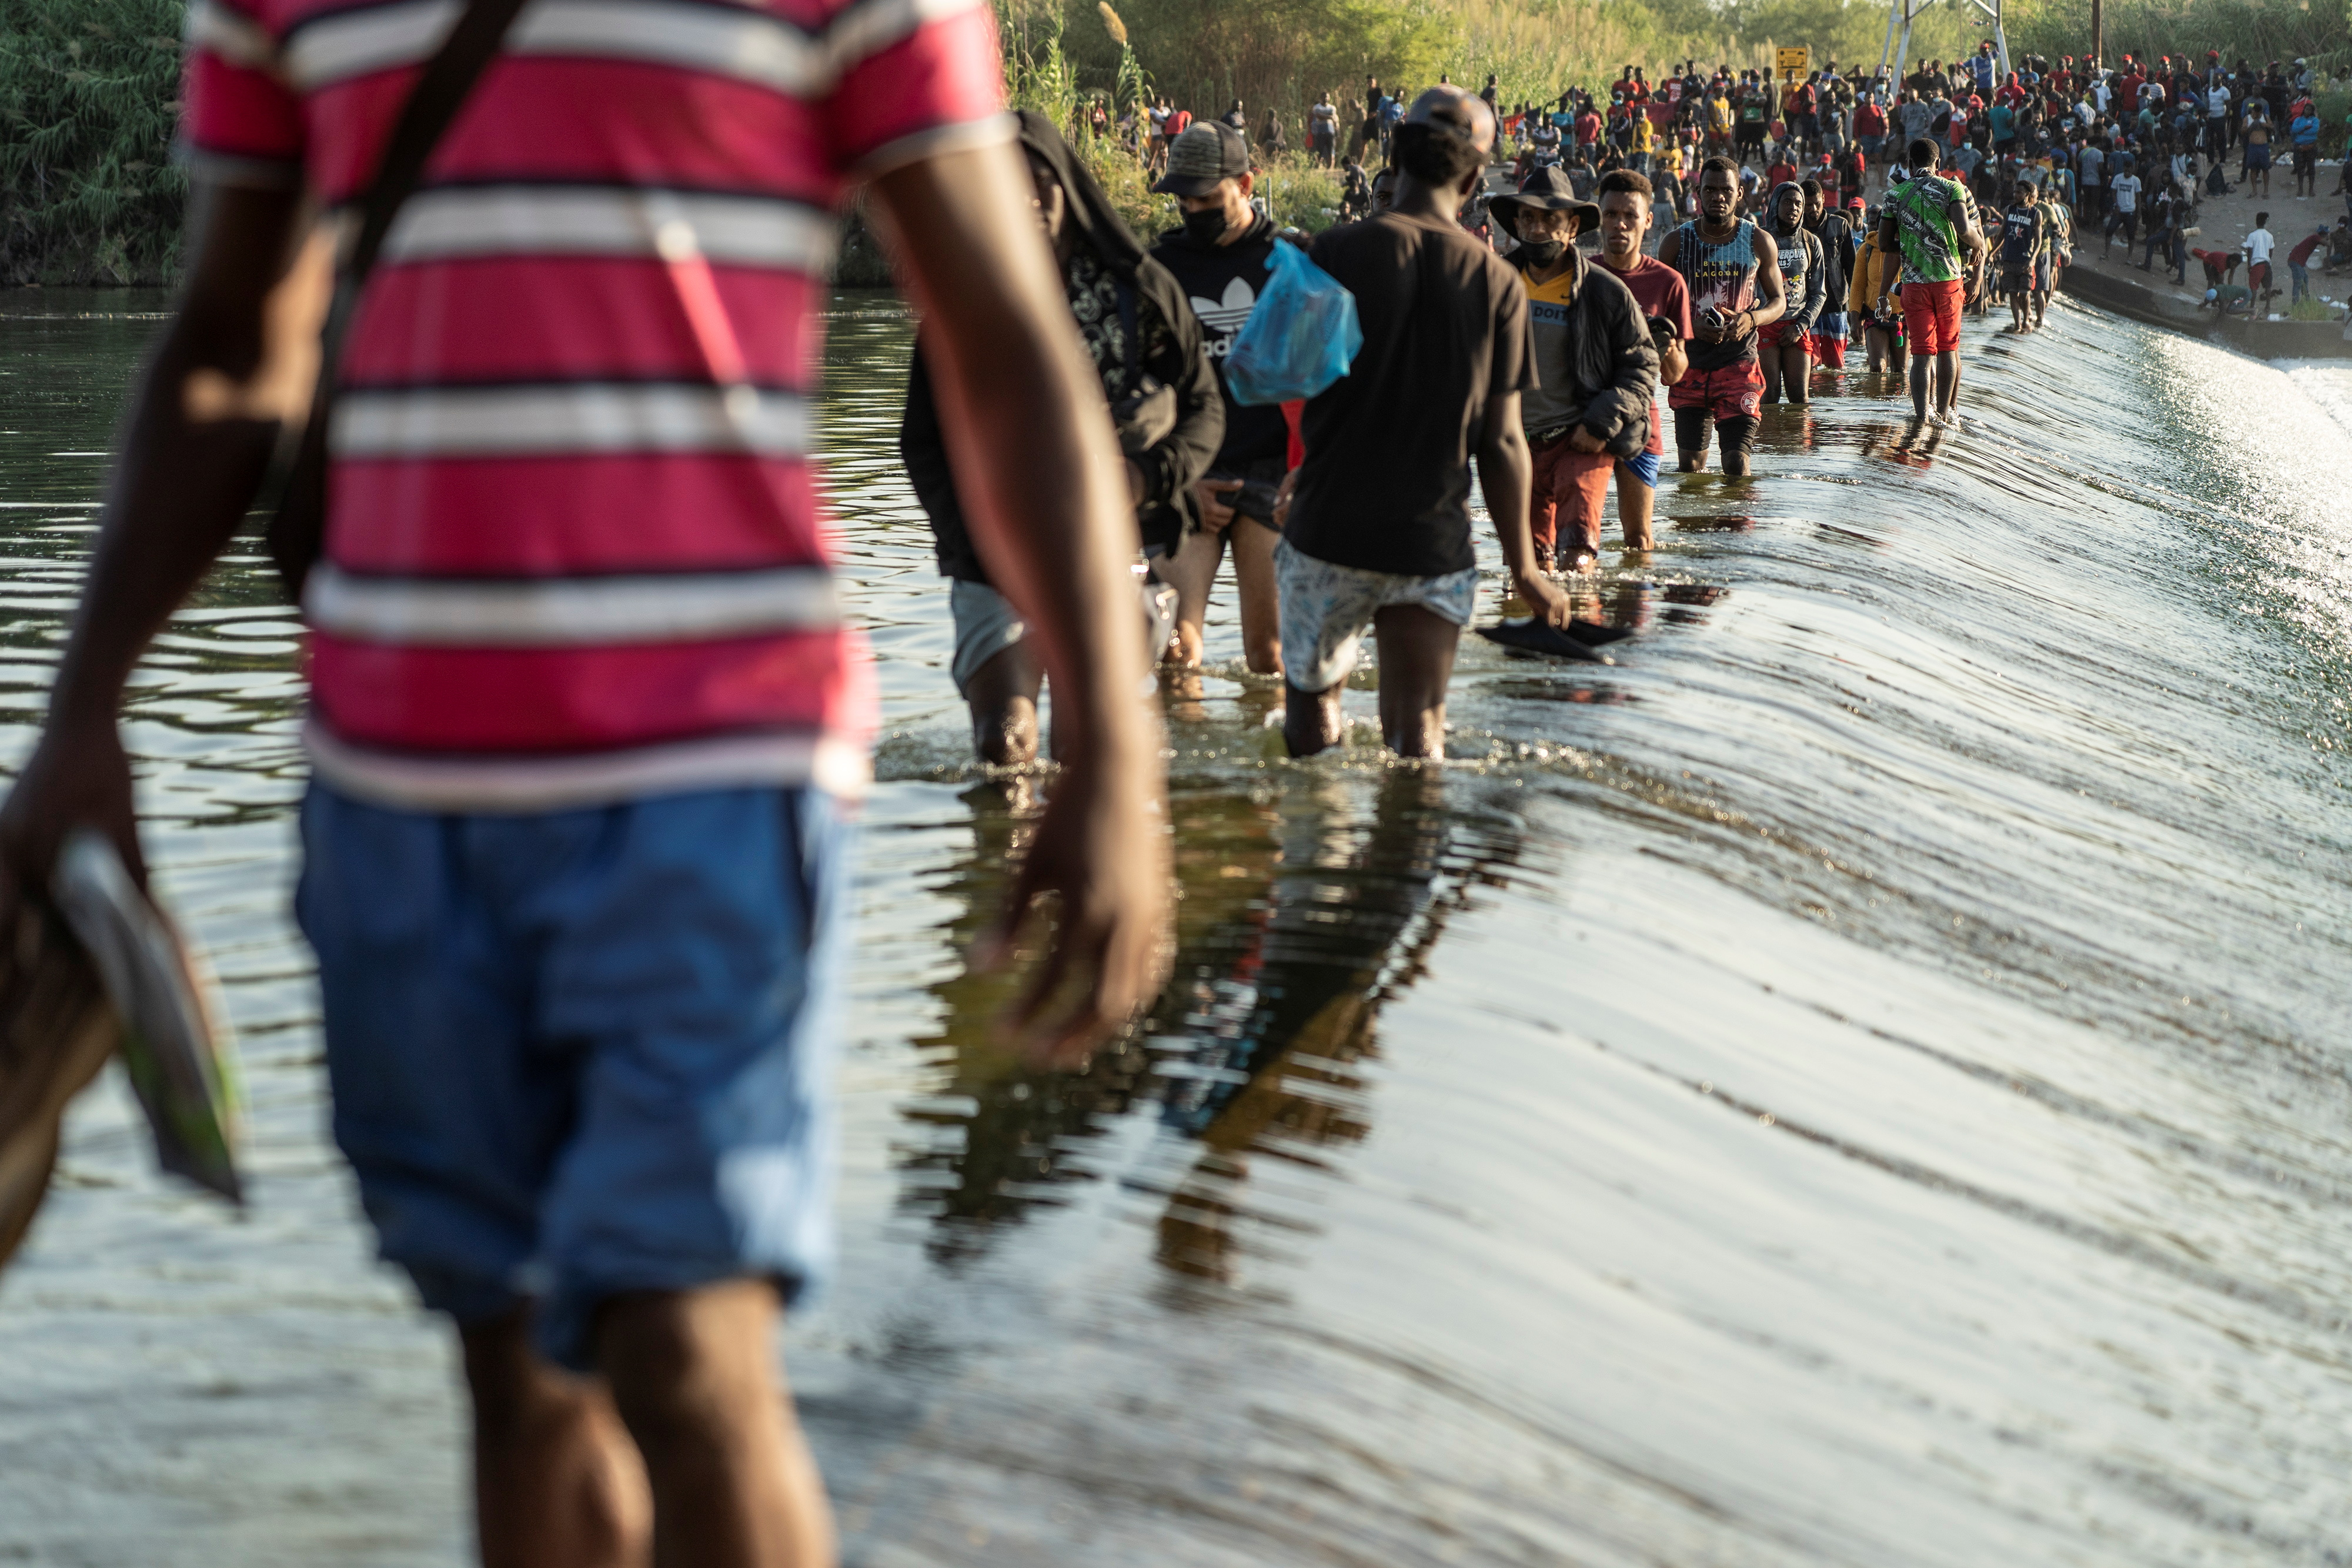 Migrants seeking asylum in the U.S. walk in the Rio Grande river near the International Bridge between Mexico and the U.S., as they wait to be processed, in Ciudad Acuna, Mexico, September 16, 2021. According to officials, some migrants cross back and forth into Mexico to buy food and supplies. REUTERS/Go Nakamura